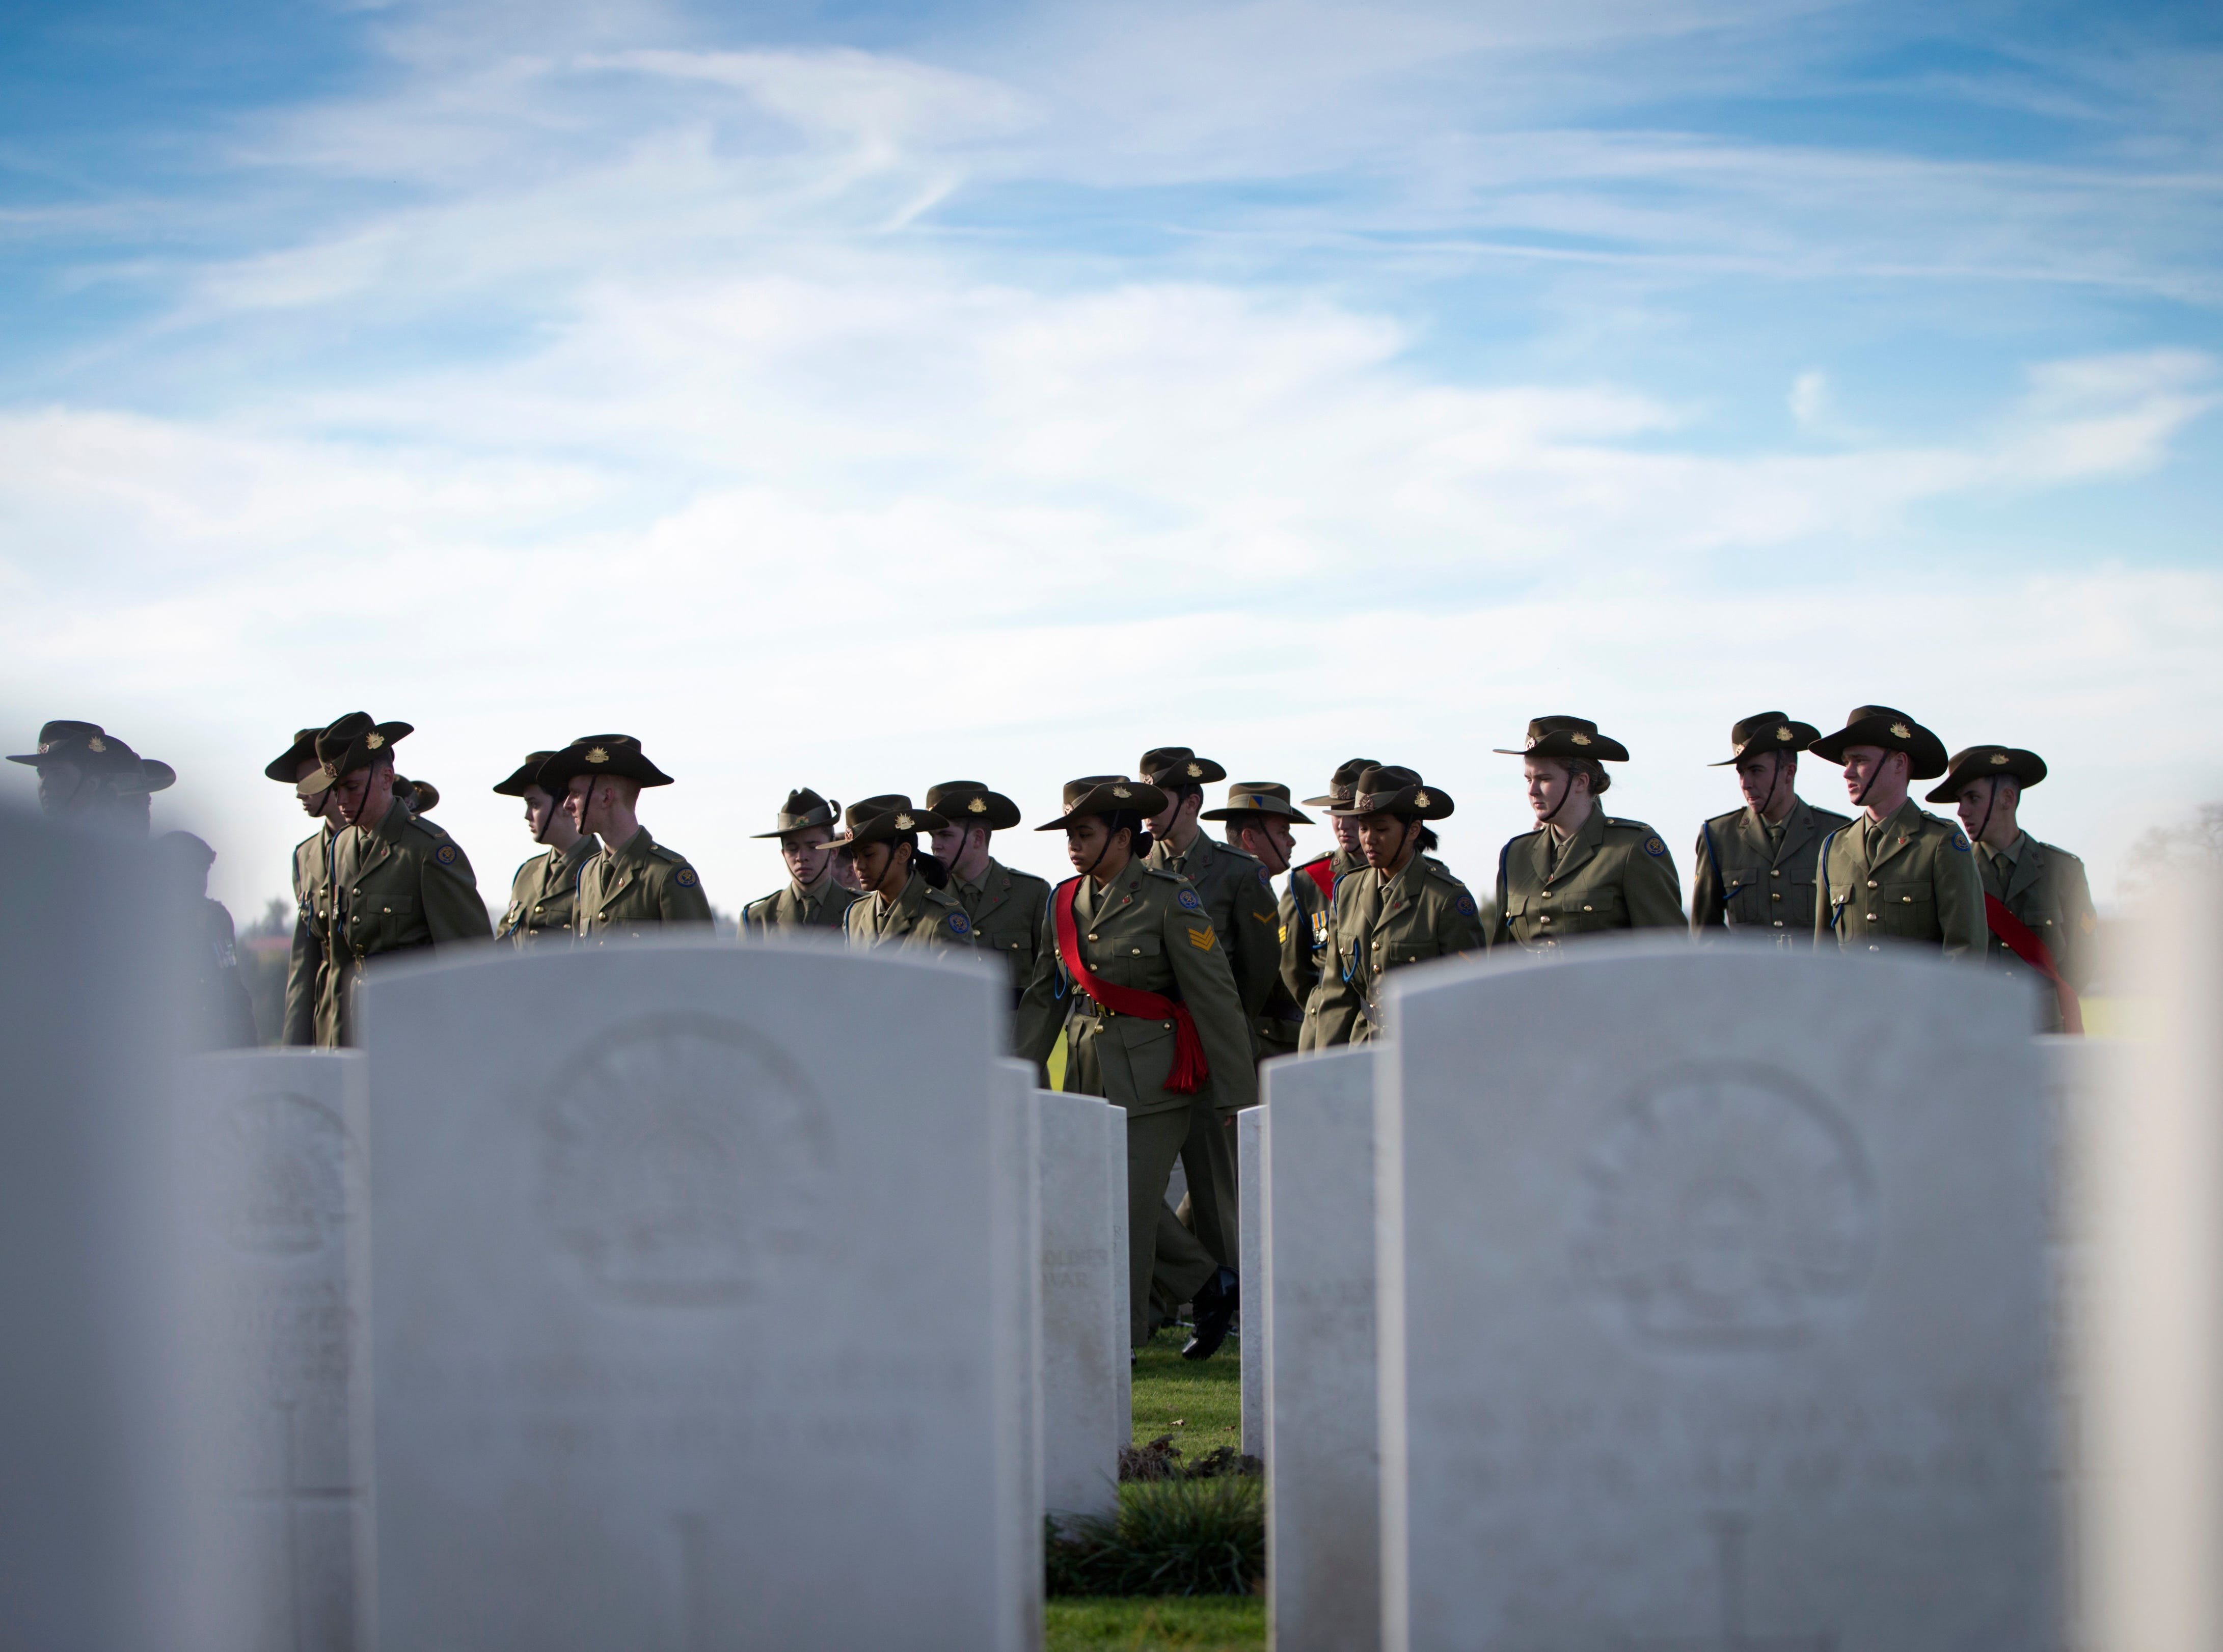 Australian soldiers gather to participate in the reburial of two unidentified World War I Australian soldiers and one British Soldier at Tyne Cot cemetery in Zonnebeke, Belgium, Tuesday, Nov. 6, 2018.